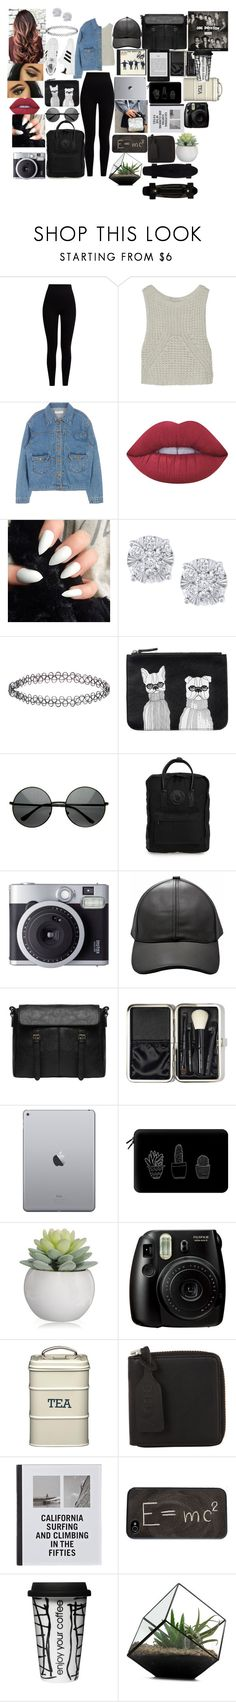 """""""Evangaline potter #10"""" by annaconley on Polyvore featuring Pepper & Mayne, Autumn Cashmere, Lime Crime, Effy Jewelry, Accessorize, adidas, Monki, Fjällräven, Fujifilm and Bobbi Brown Cosmetics"""